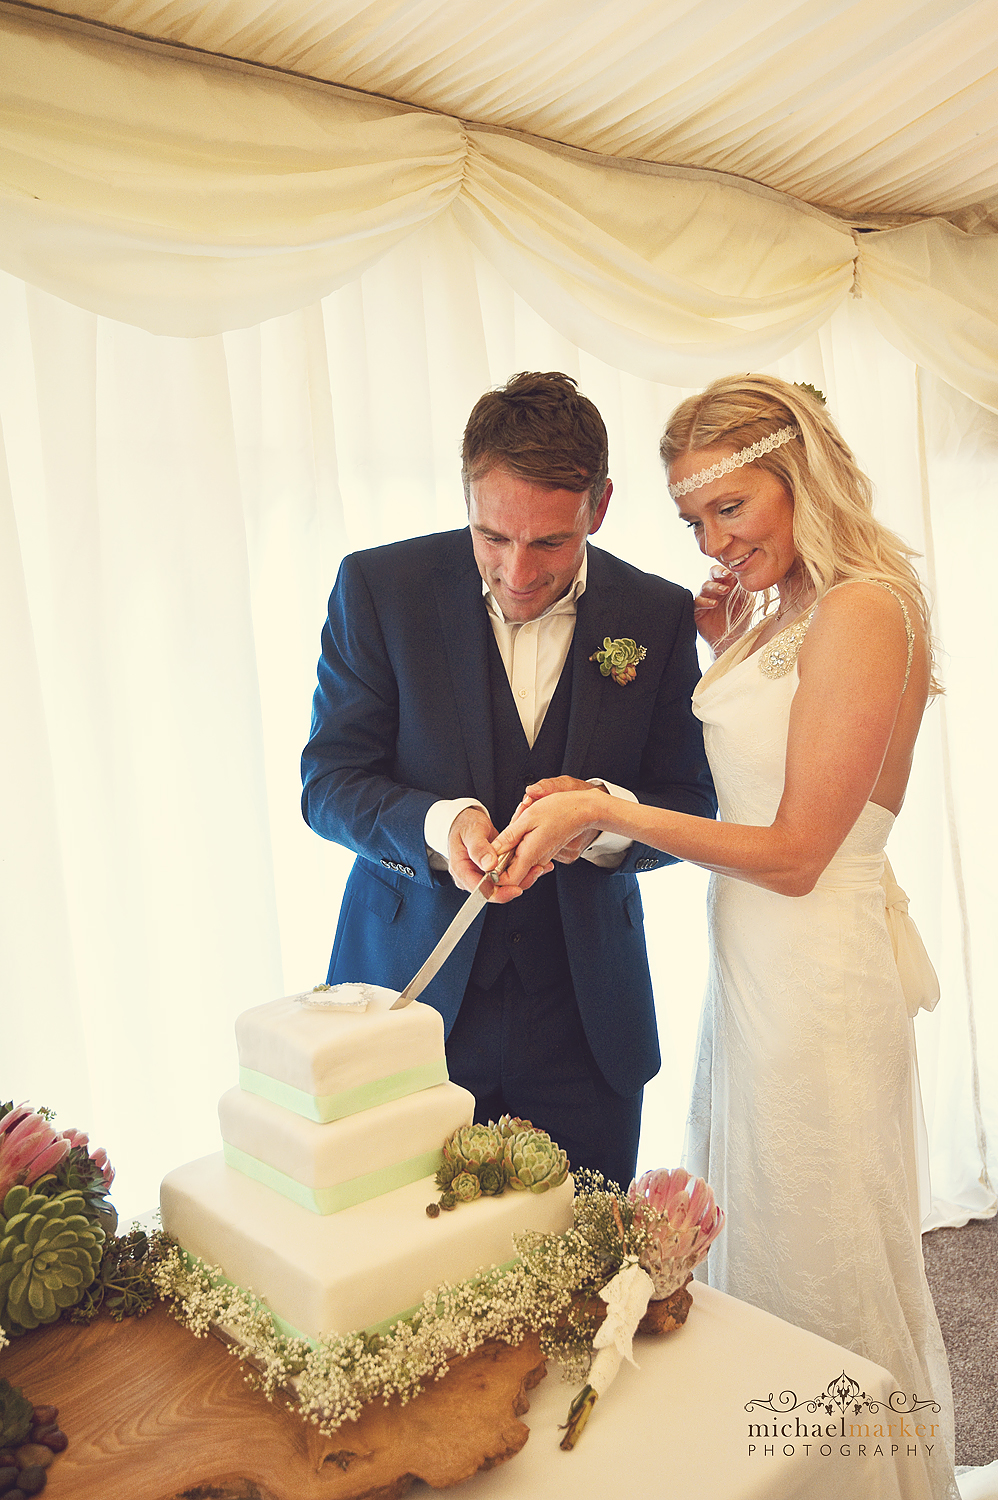 Bride and groom cutting cake at Deer Park wedding reception near Exeter